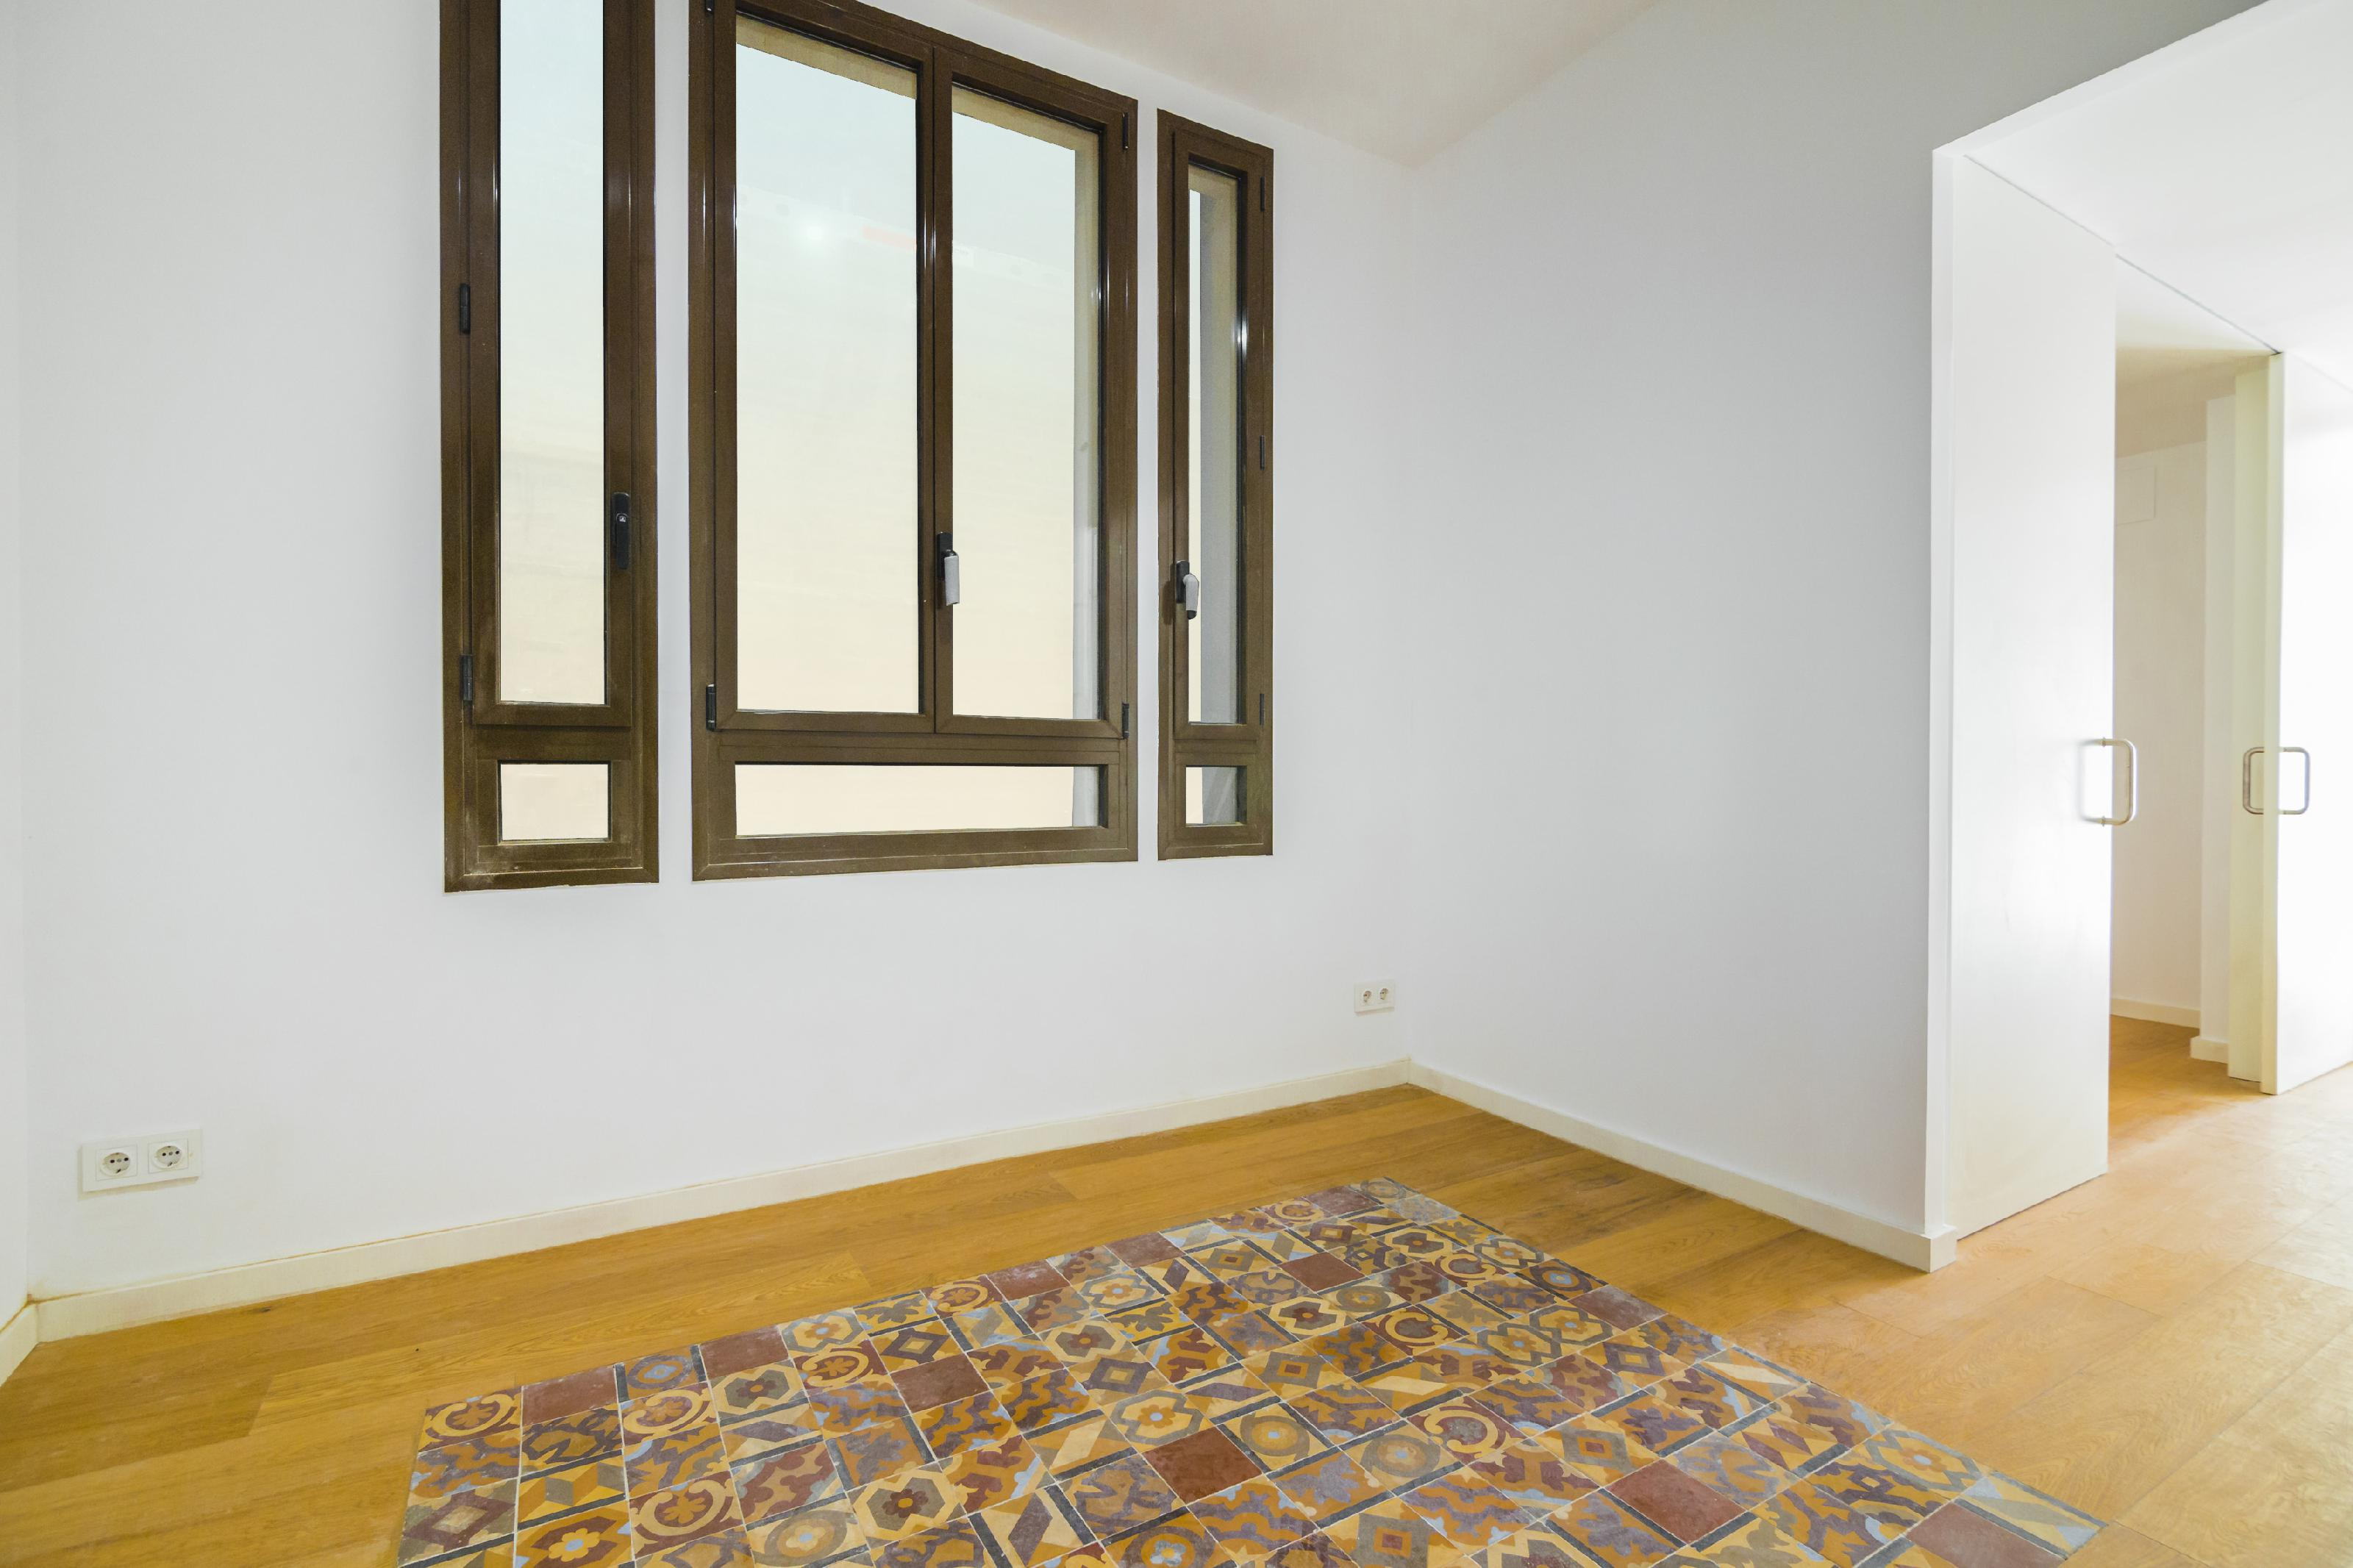 173872 Apartment for sale in Eixample, Old Left Eixample 5